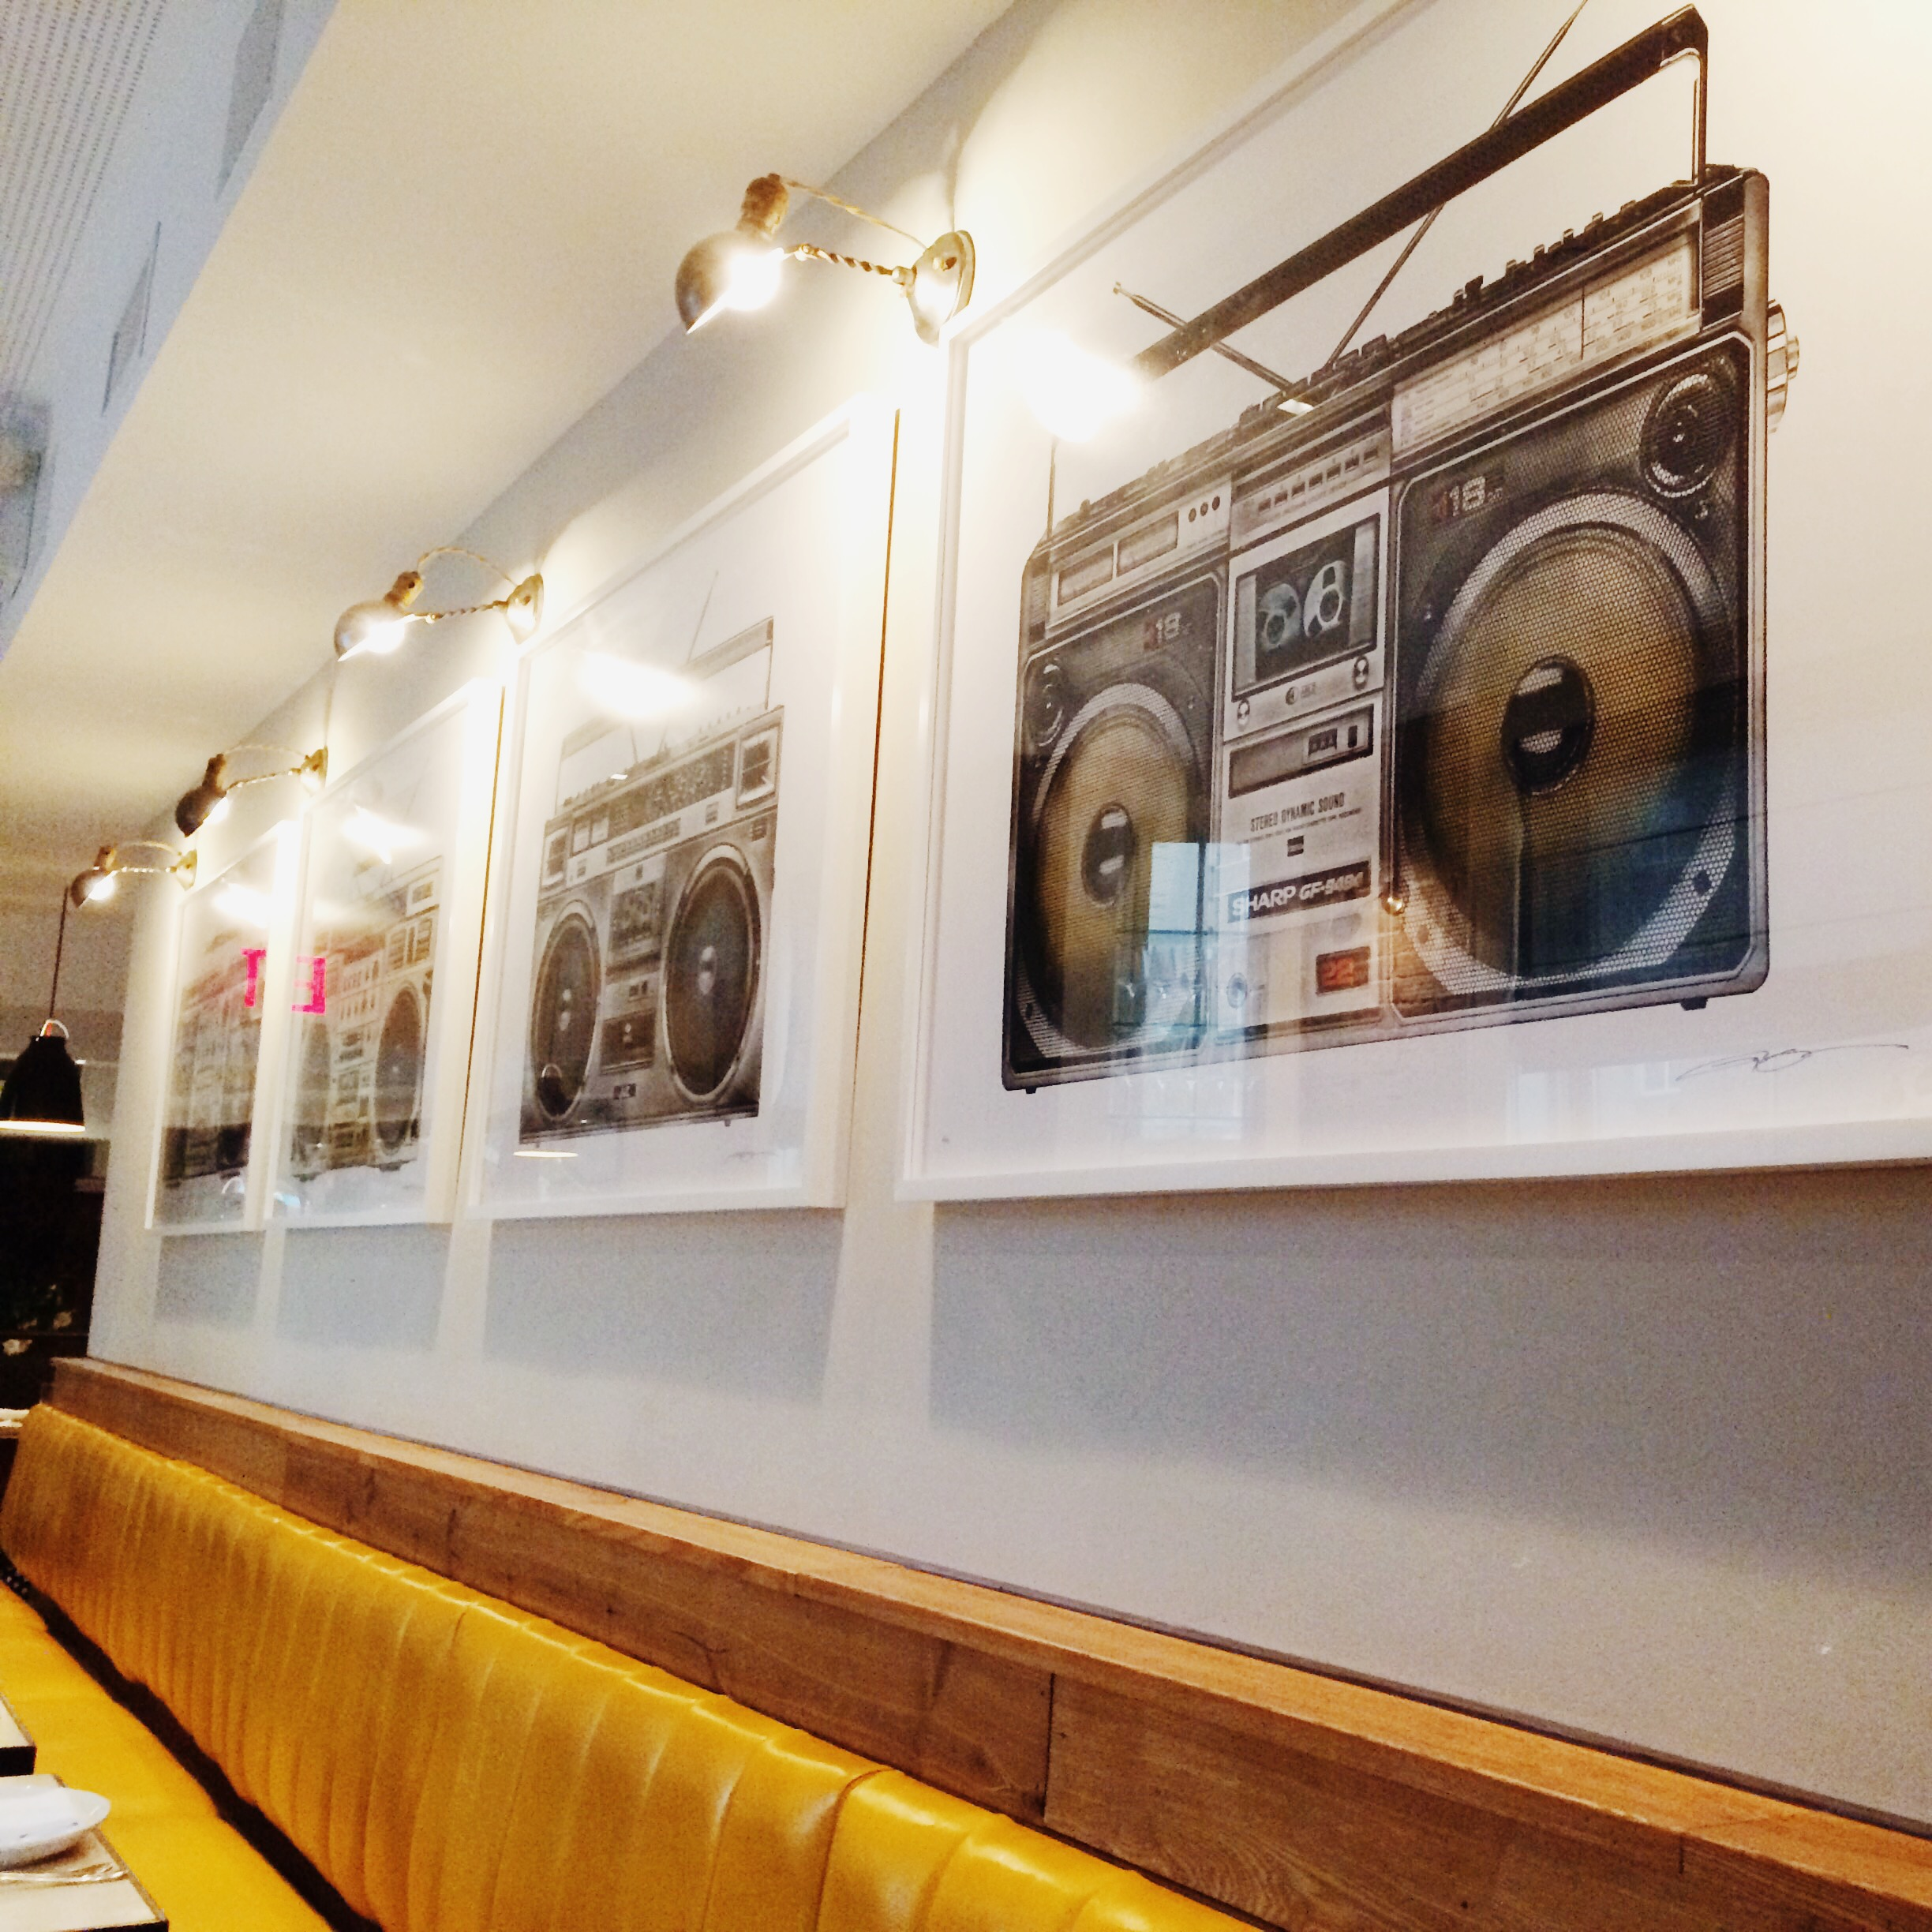 Lyle Owerko Boombox Project originals adorn the walls at CB